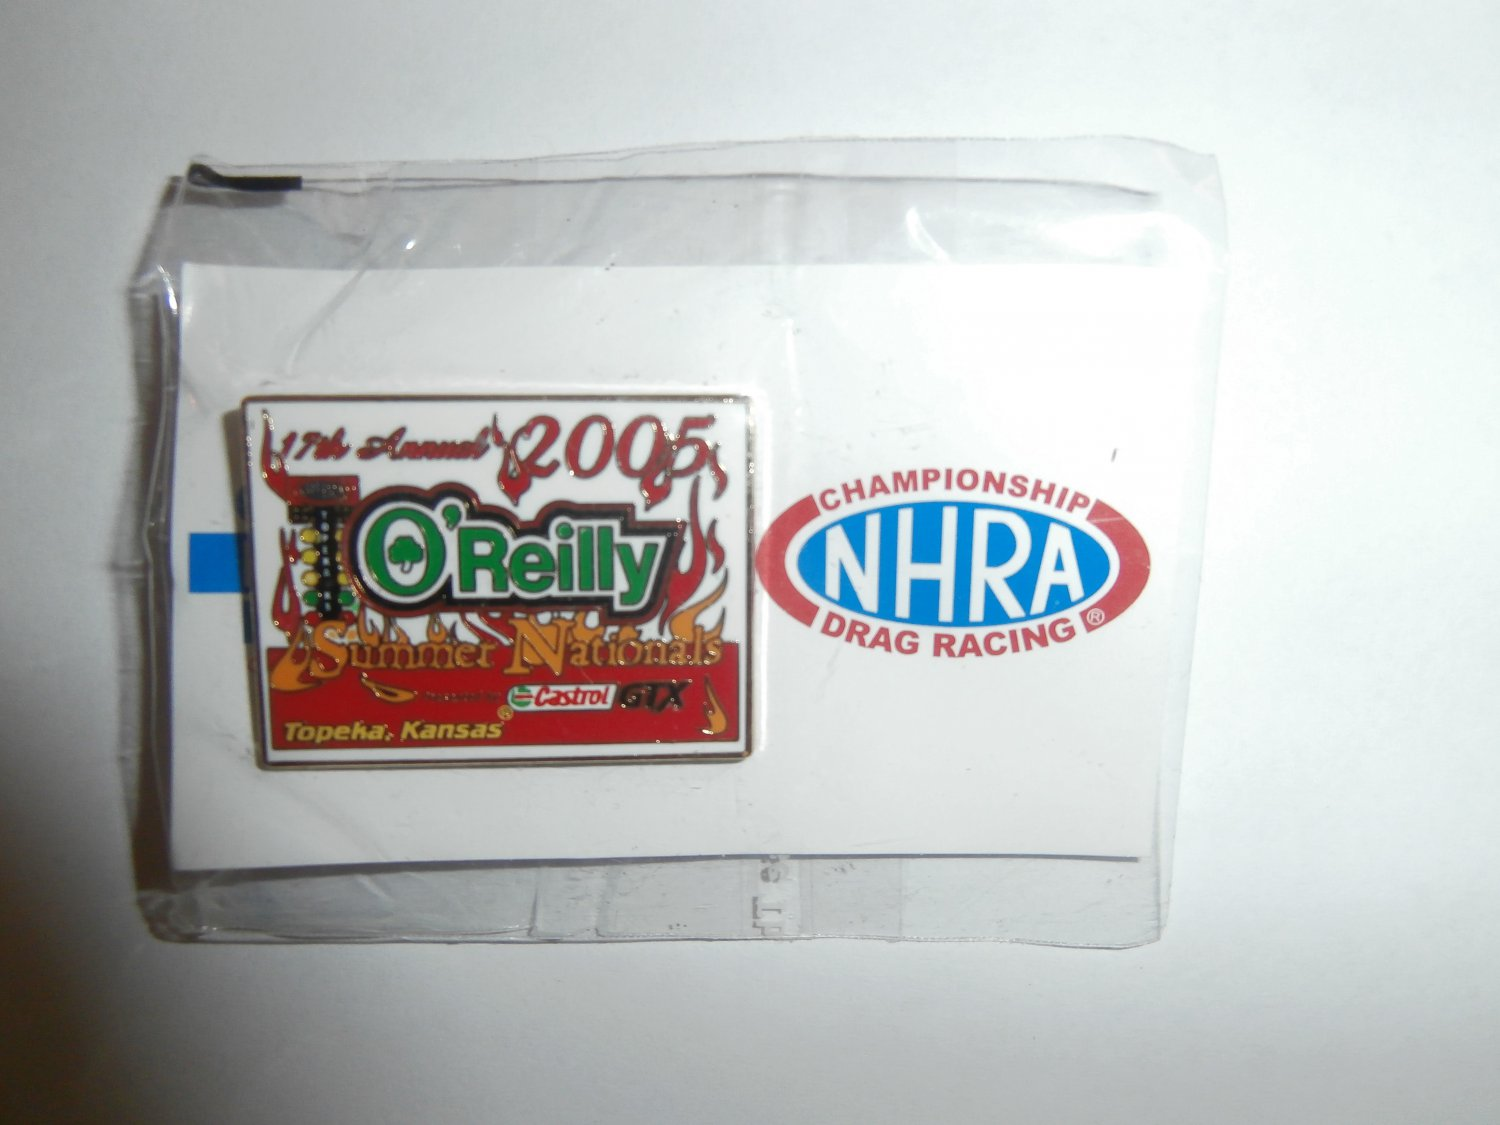 2005 NHRA Event Pin Topeka